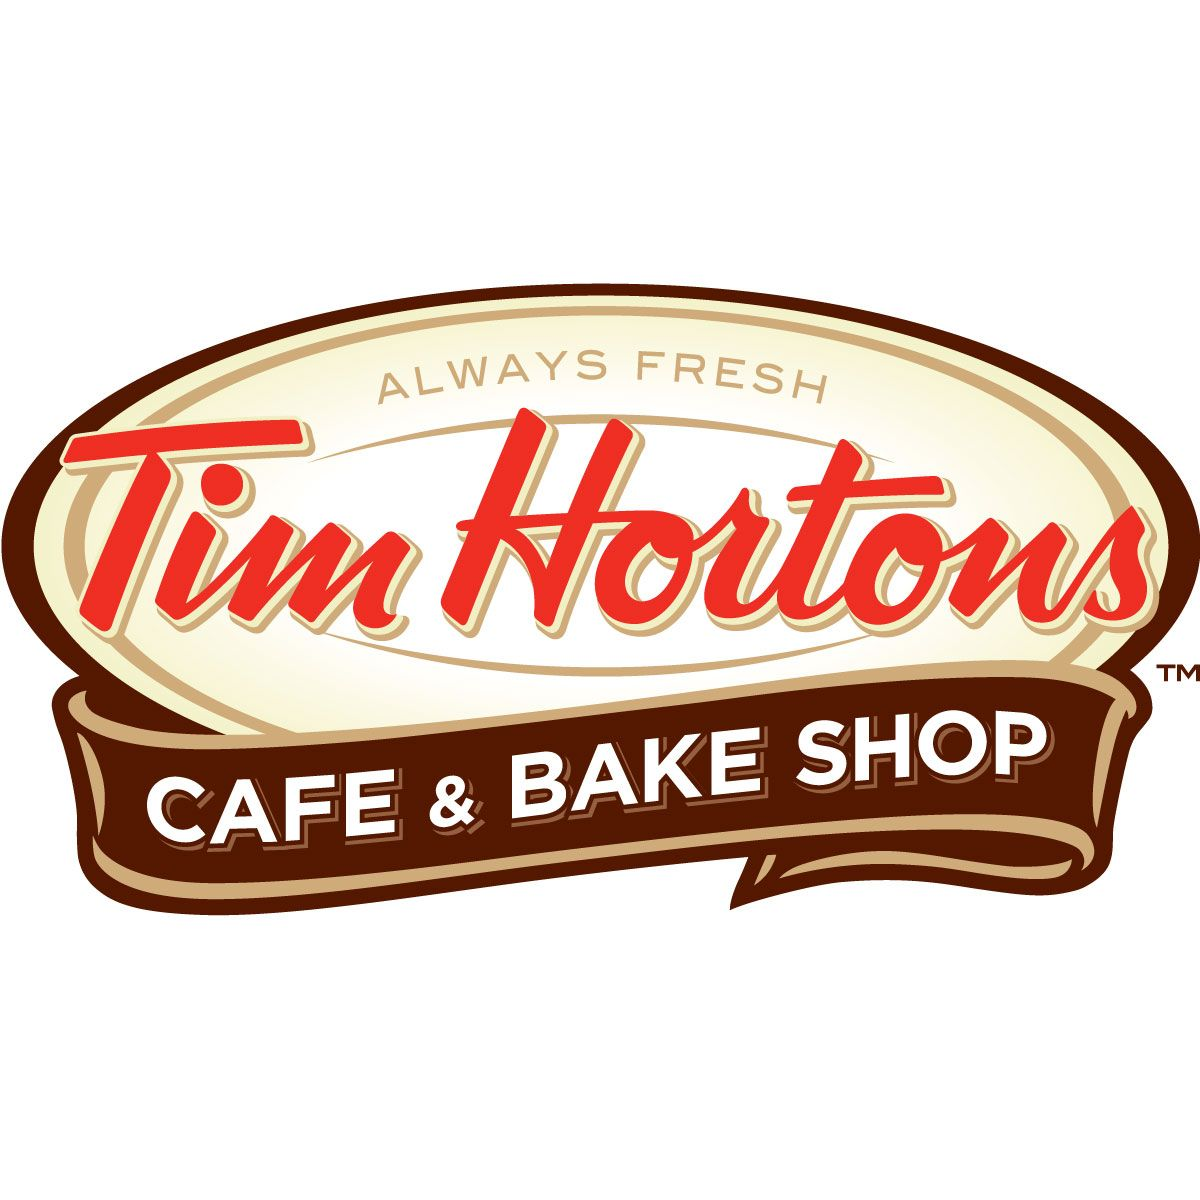 Canada's Favourite Coffee Tim hortons, Free food